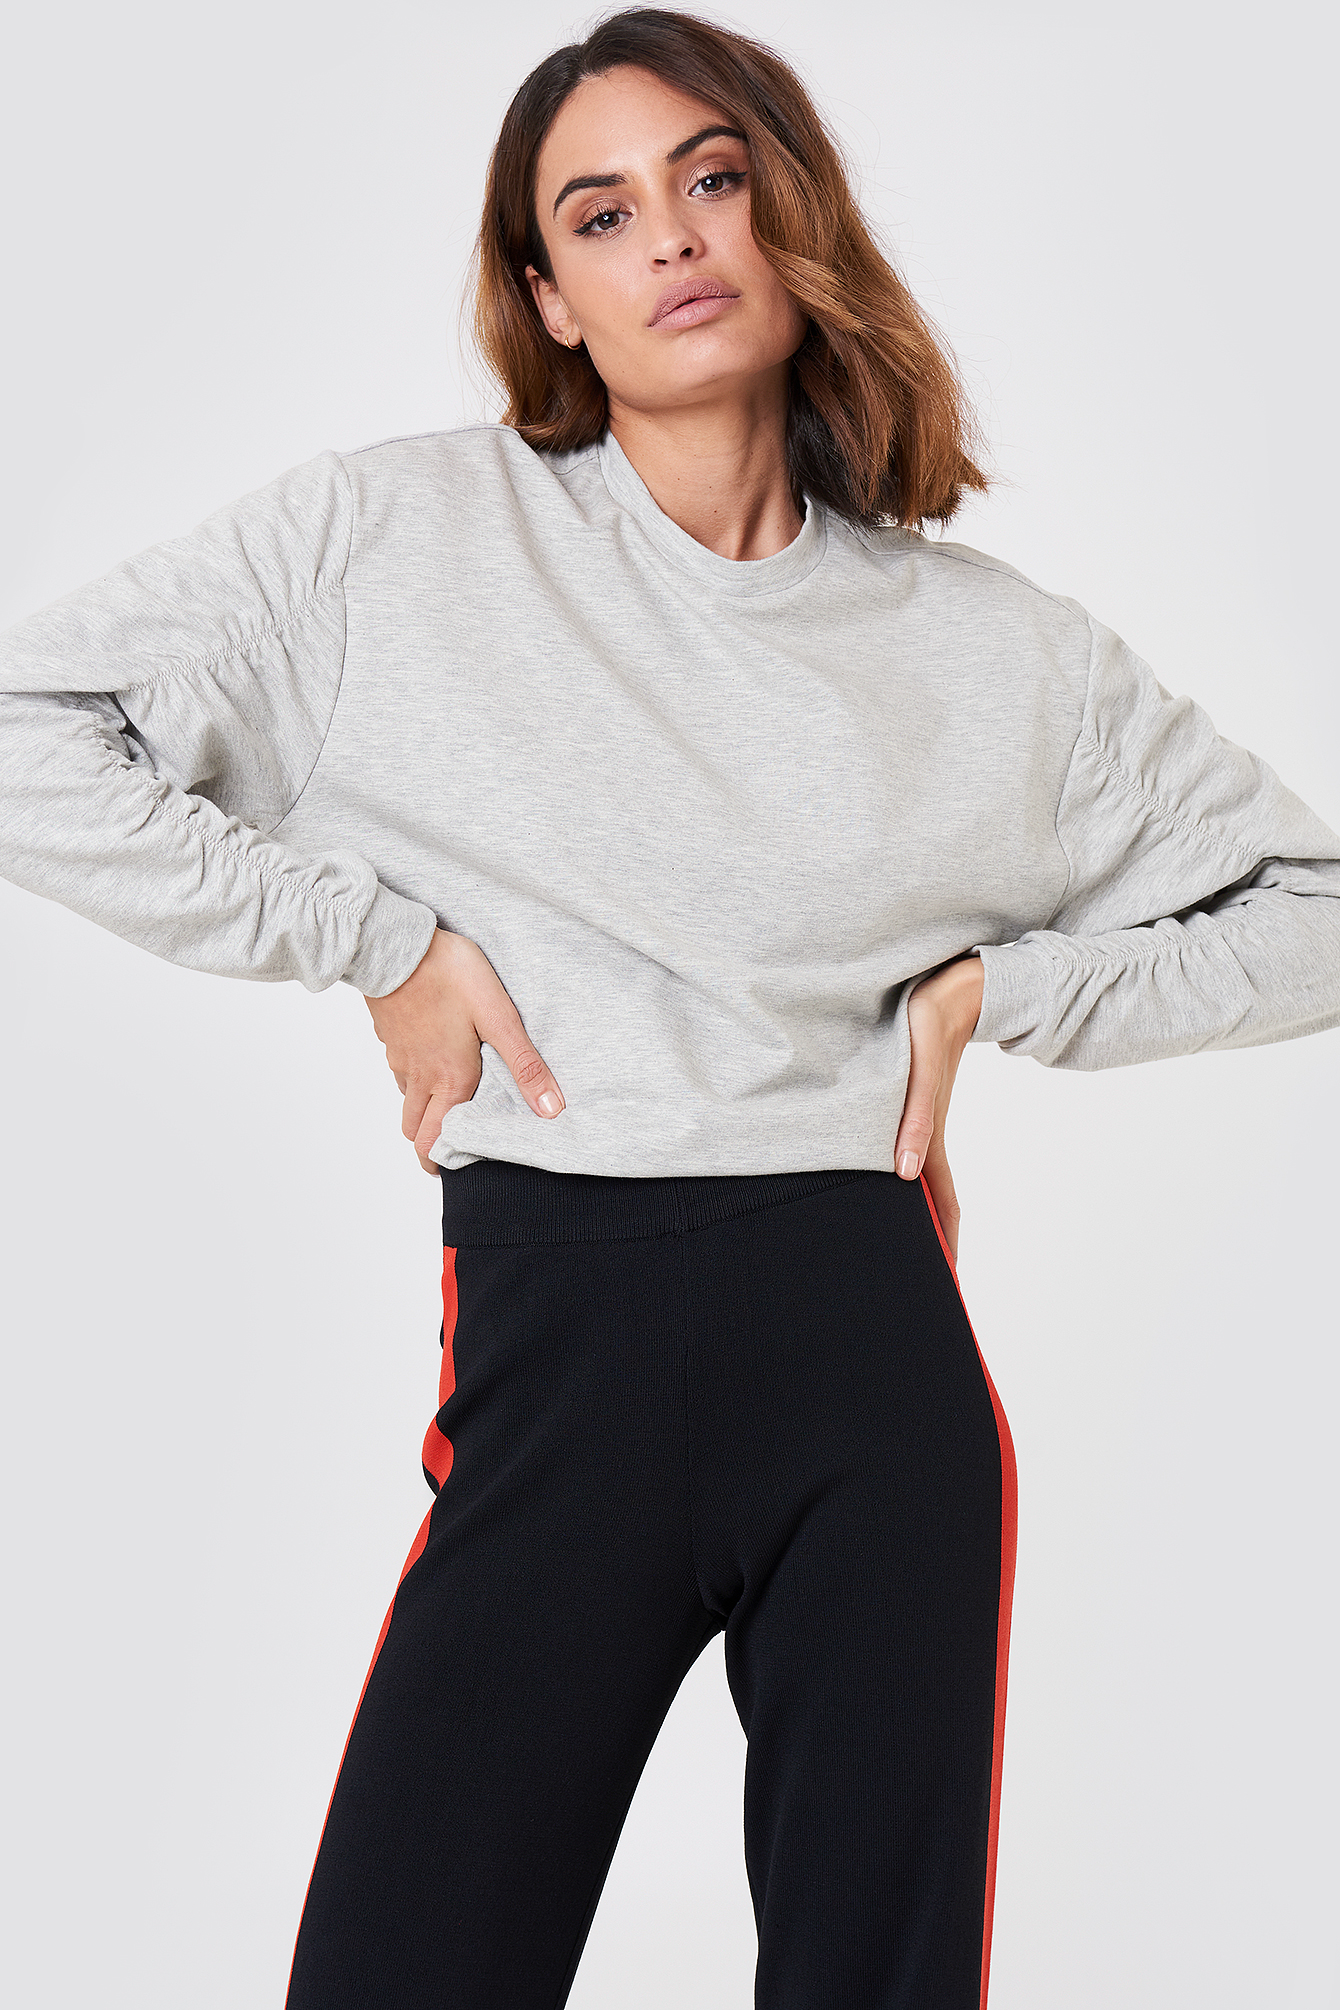 FIFI TIA SWEATSHIRT - GREY